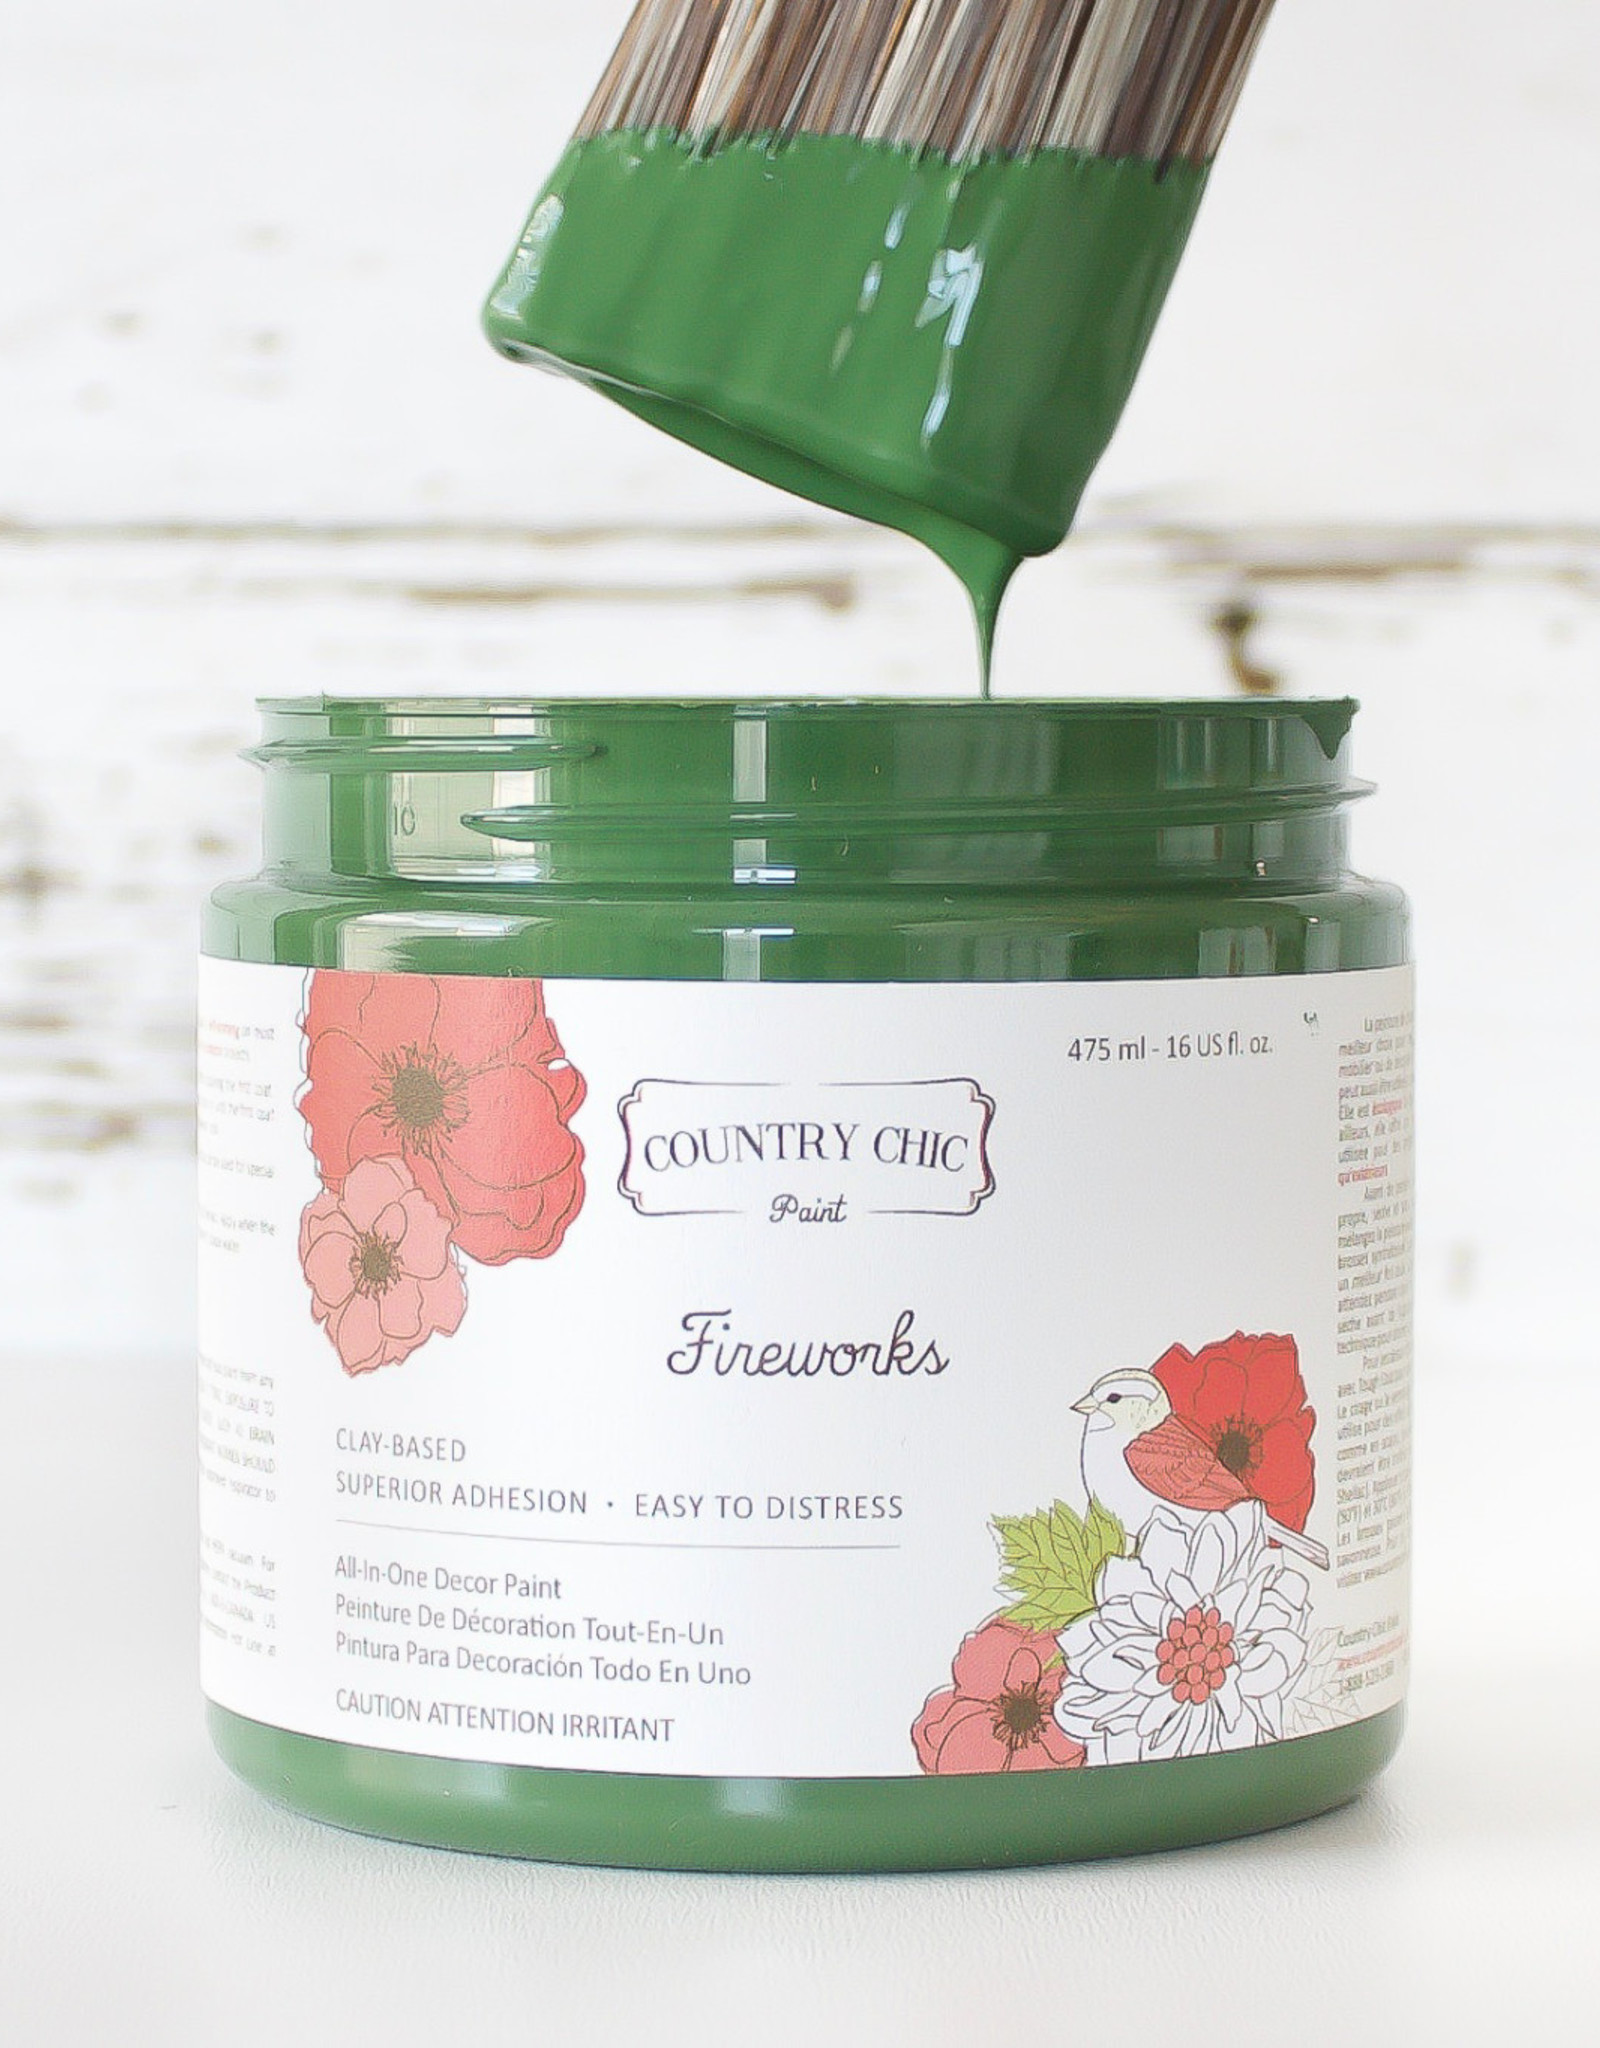 Country Chic Country Chic Paint Sample - 4oz Fireworks